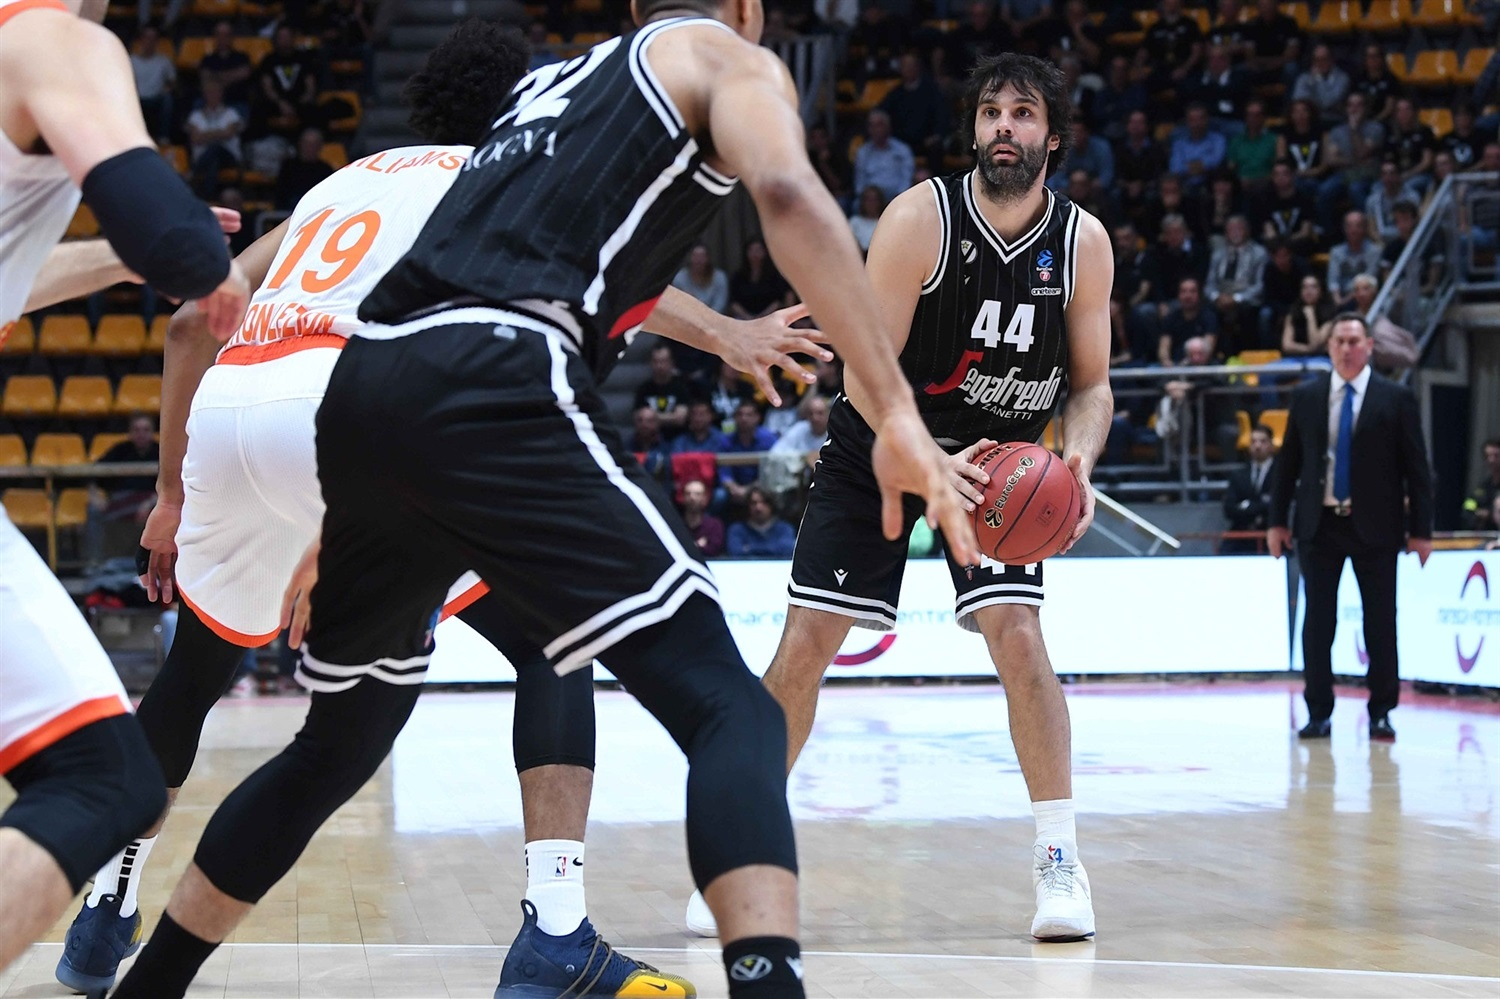 Milos Teodosic - Segafredo Virtus Bologna (photo Virtus) - EC19